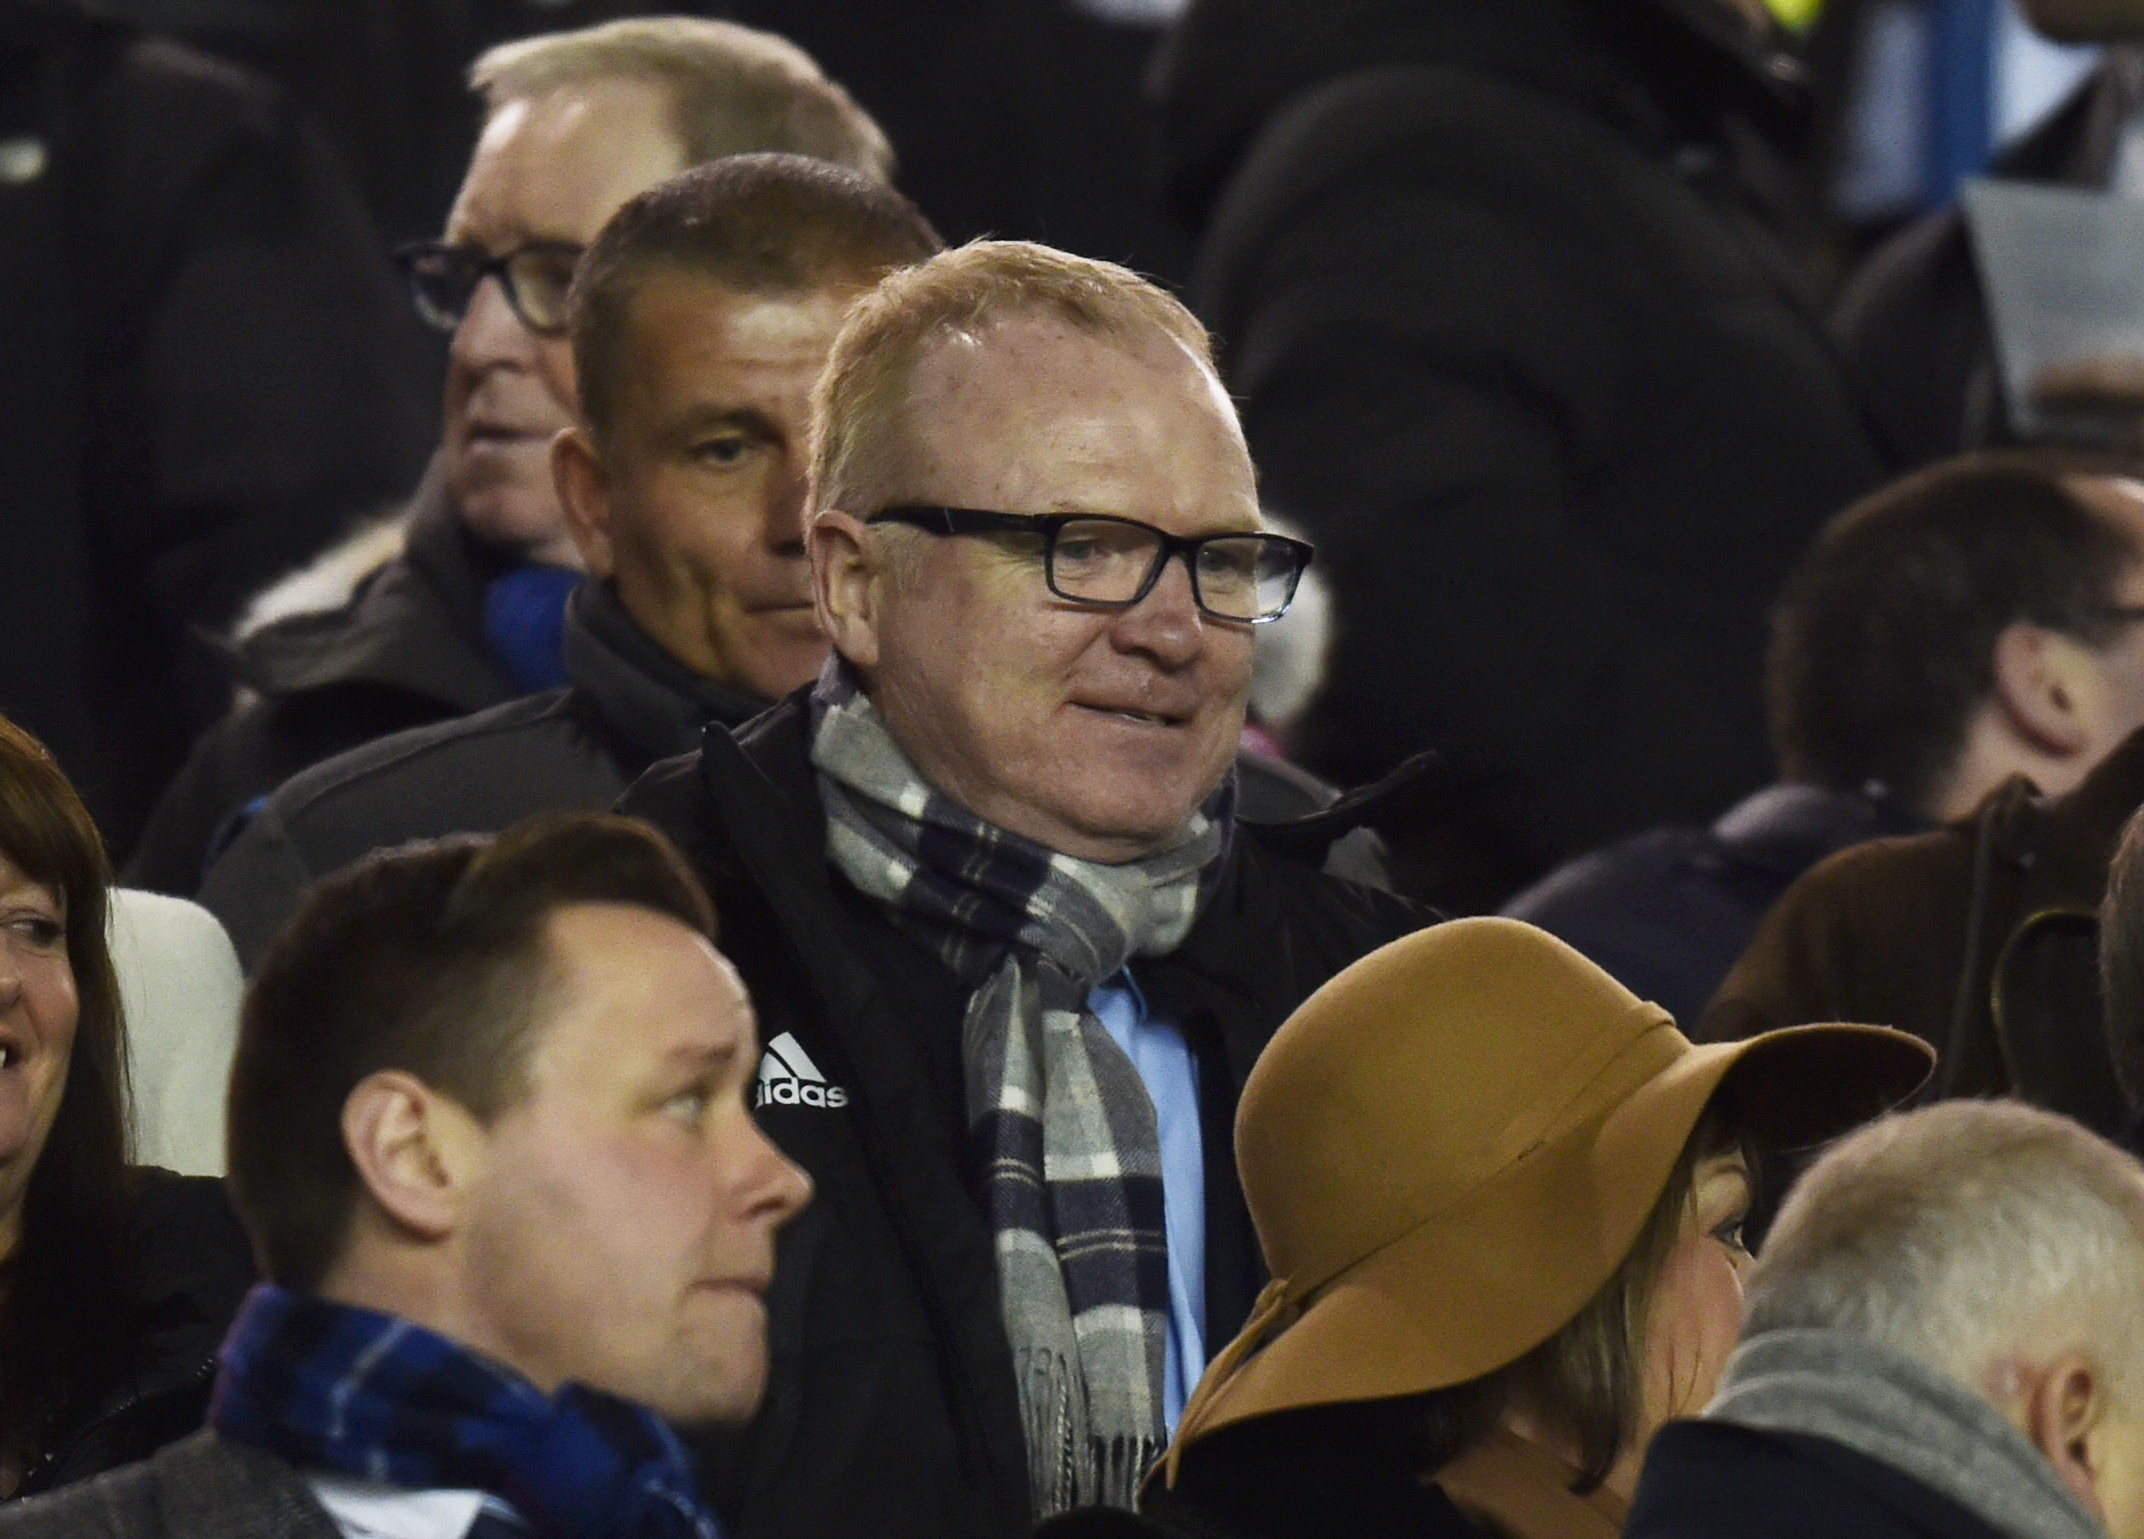 Scotland manager Alex McLeish takes in Aberdeen's victory over Rangers in the Scottish Cup at Ibrox